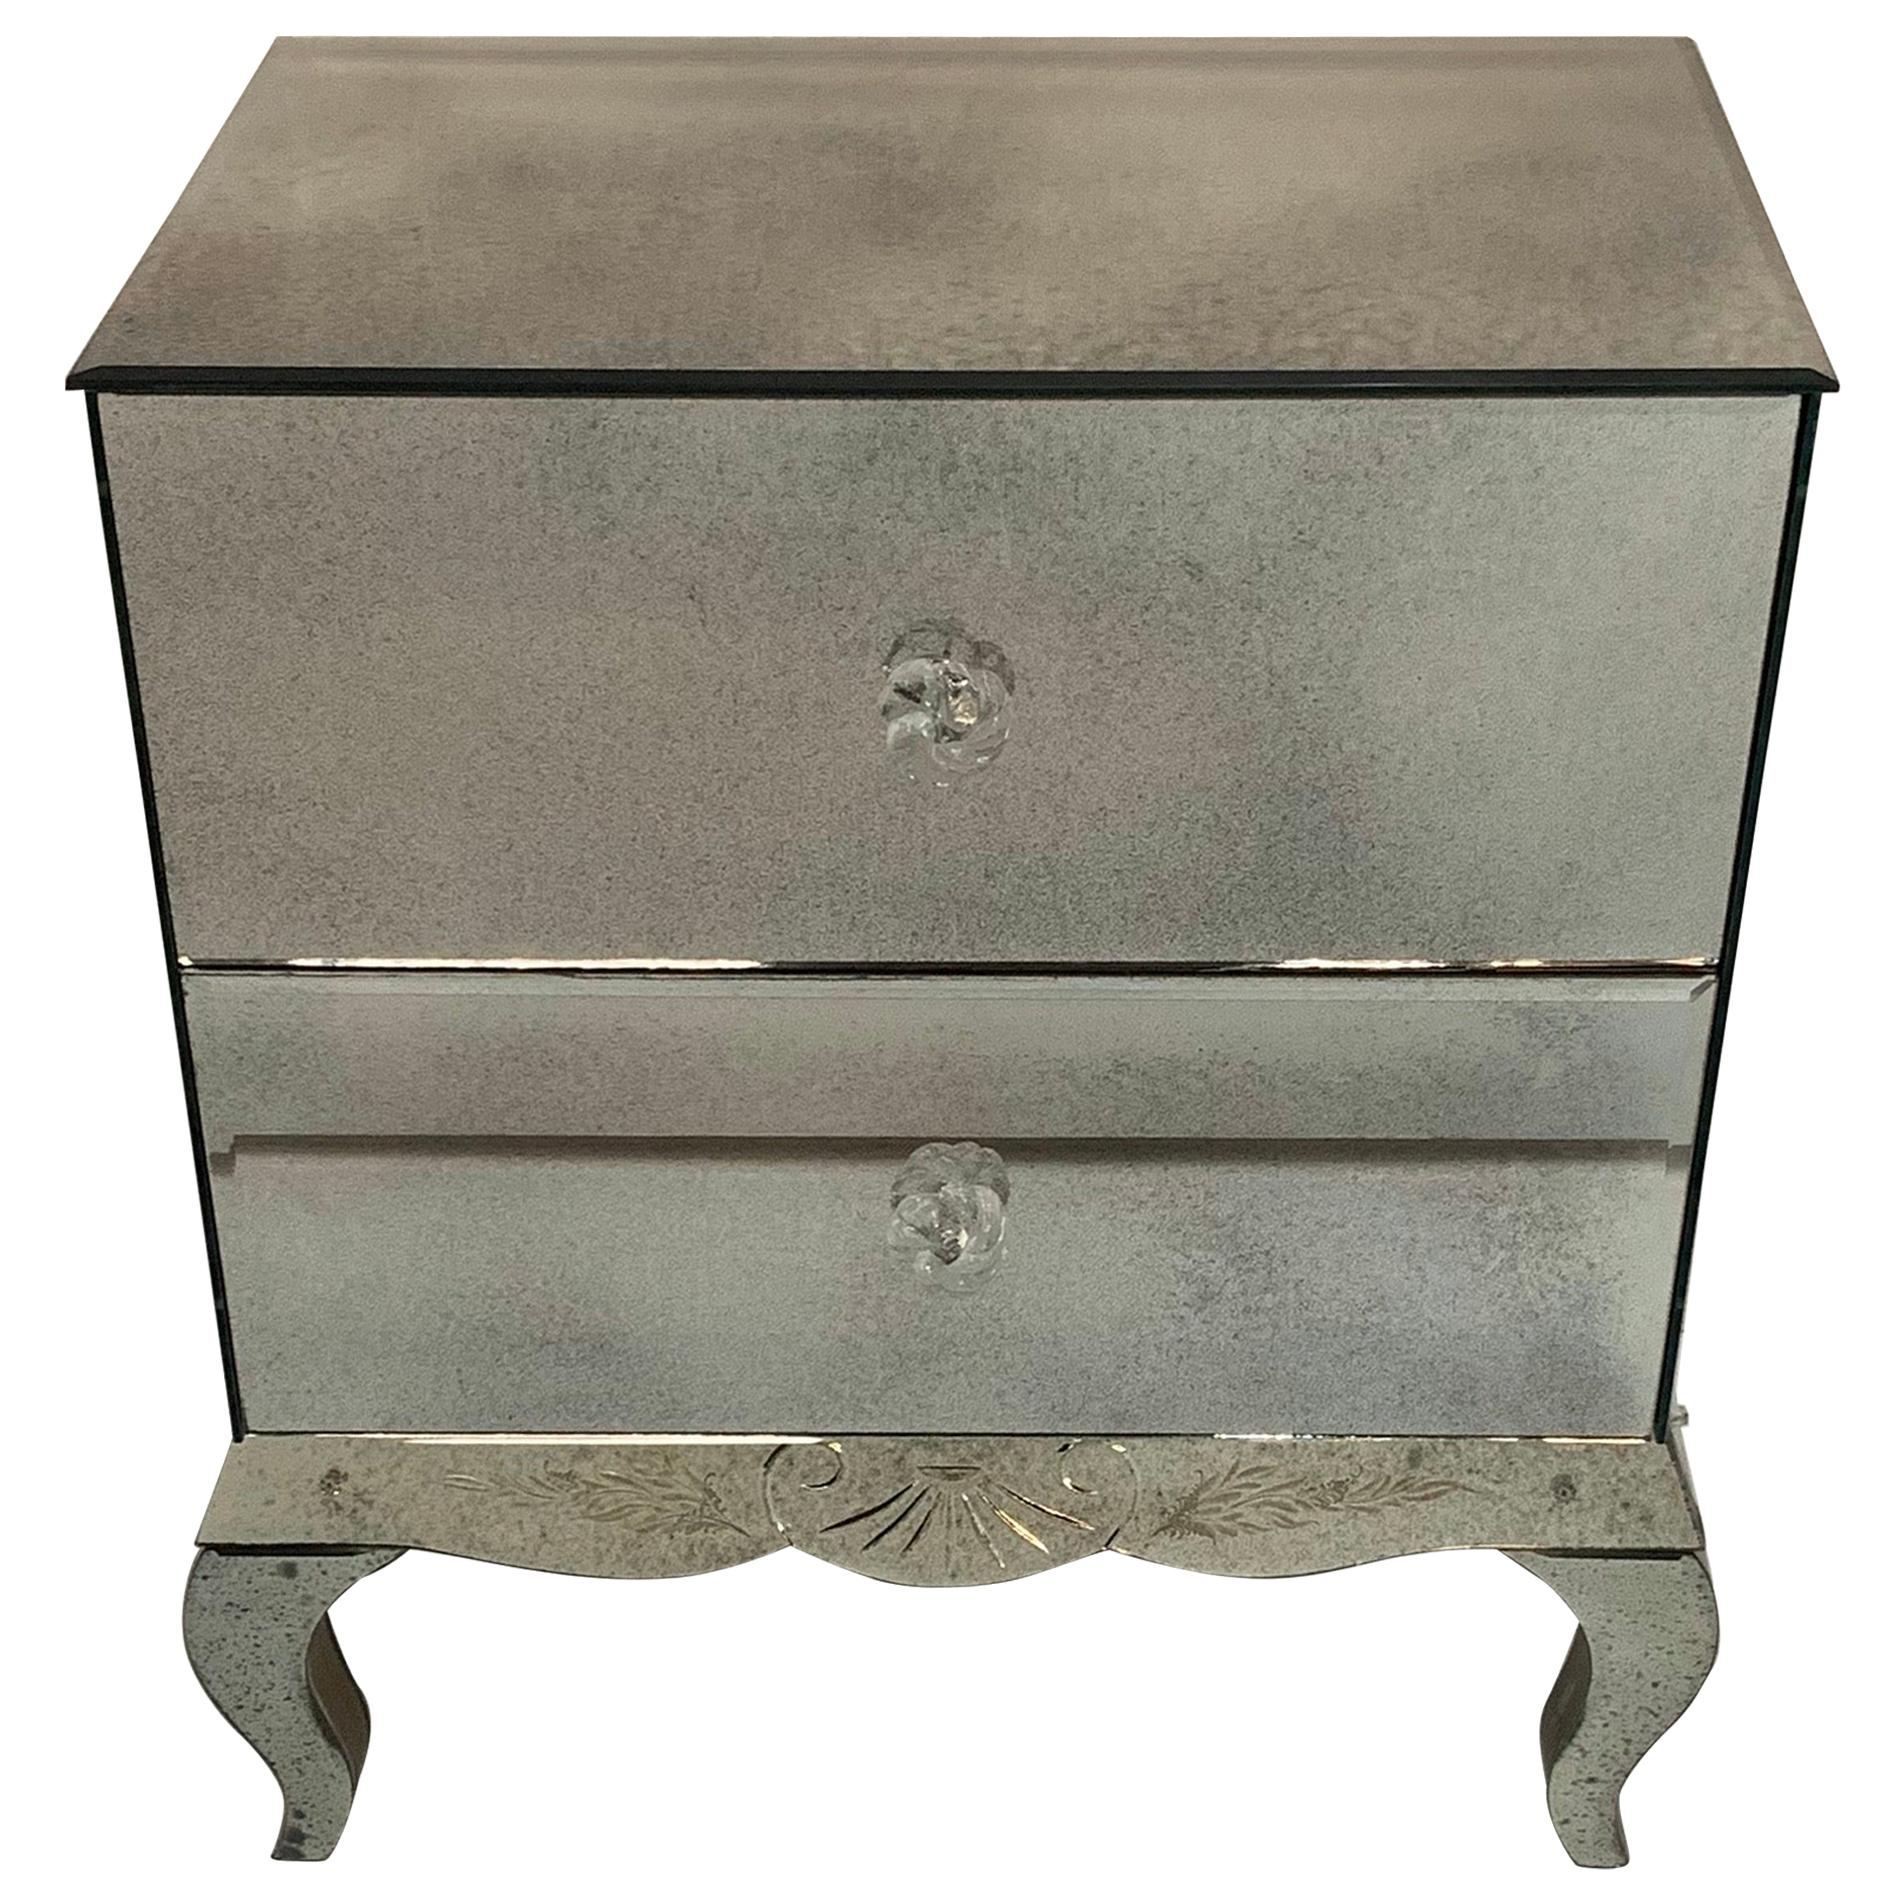 Wonderful Lorin Marsh Etched Two-Drawer Mirrored Chest with Flower Rosette Pulls